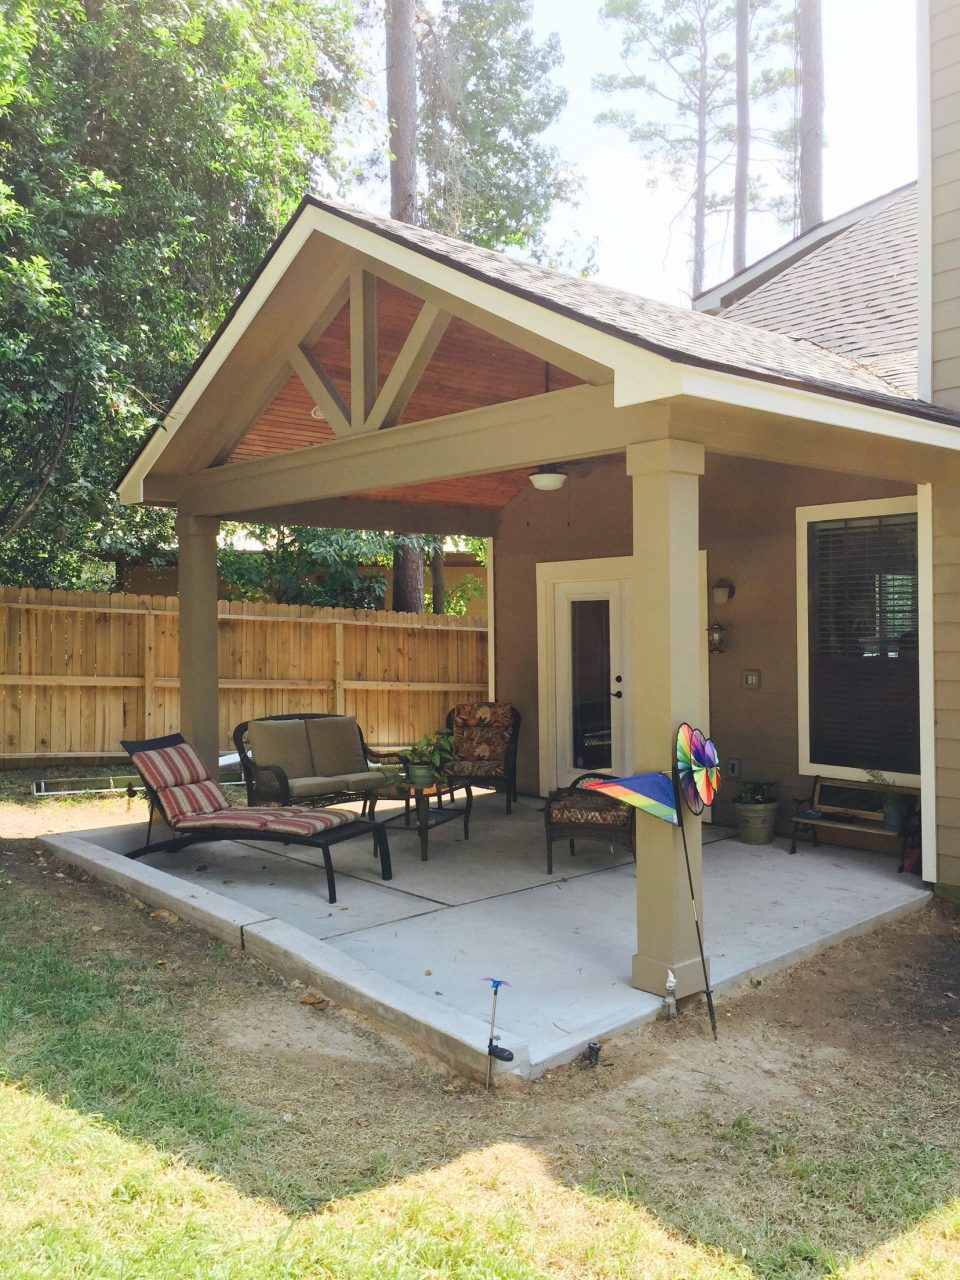 Gable Roof Patio Cover With Wood Stained Ceiling Gable Roof Patio